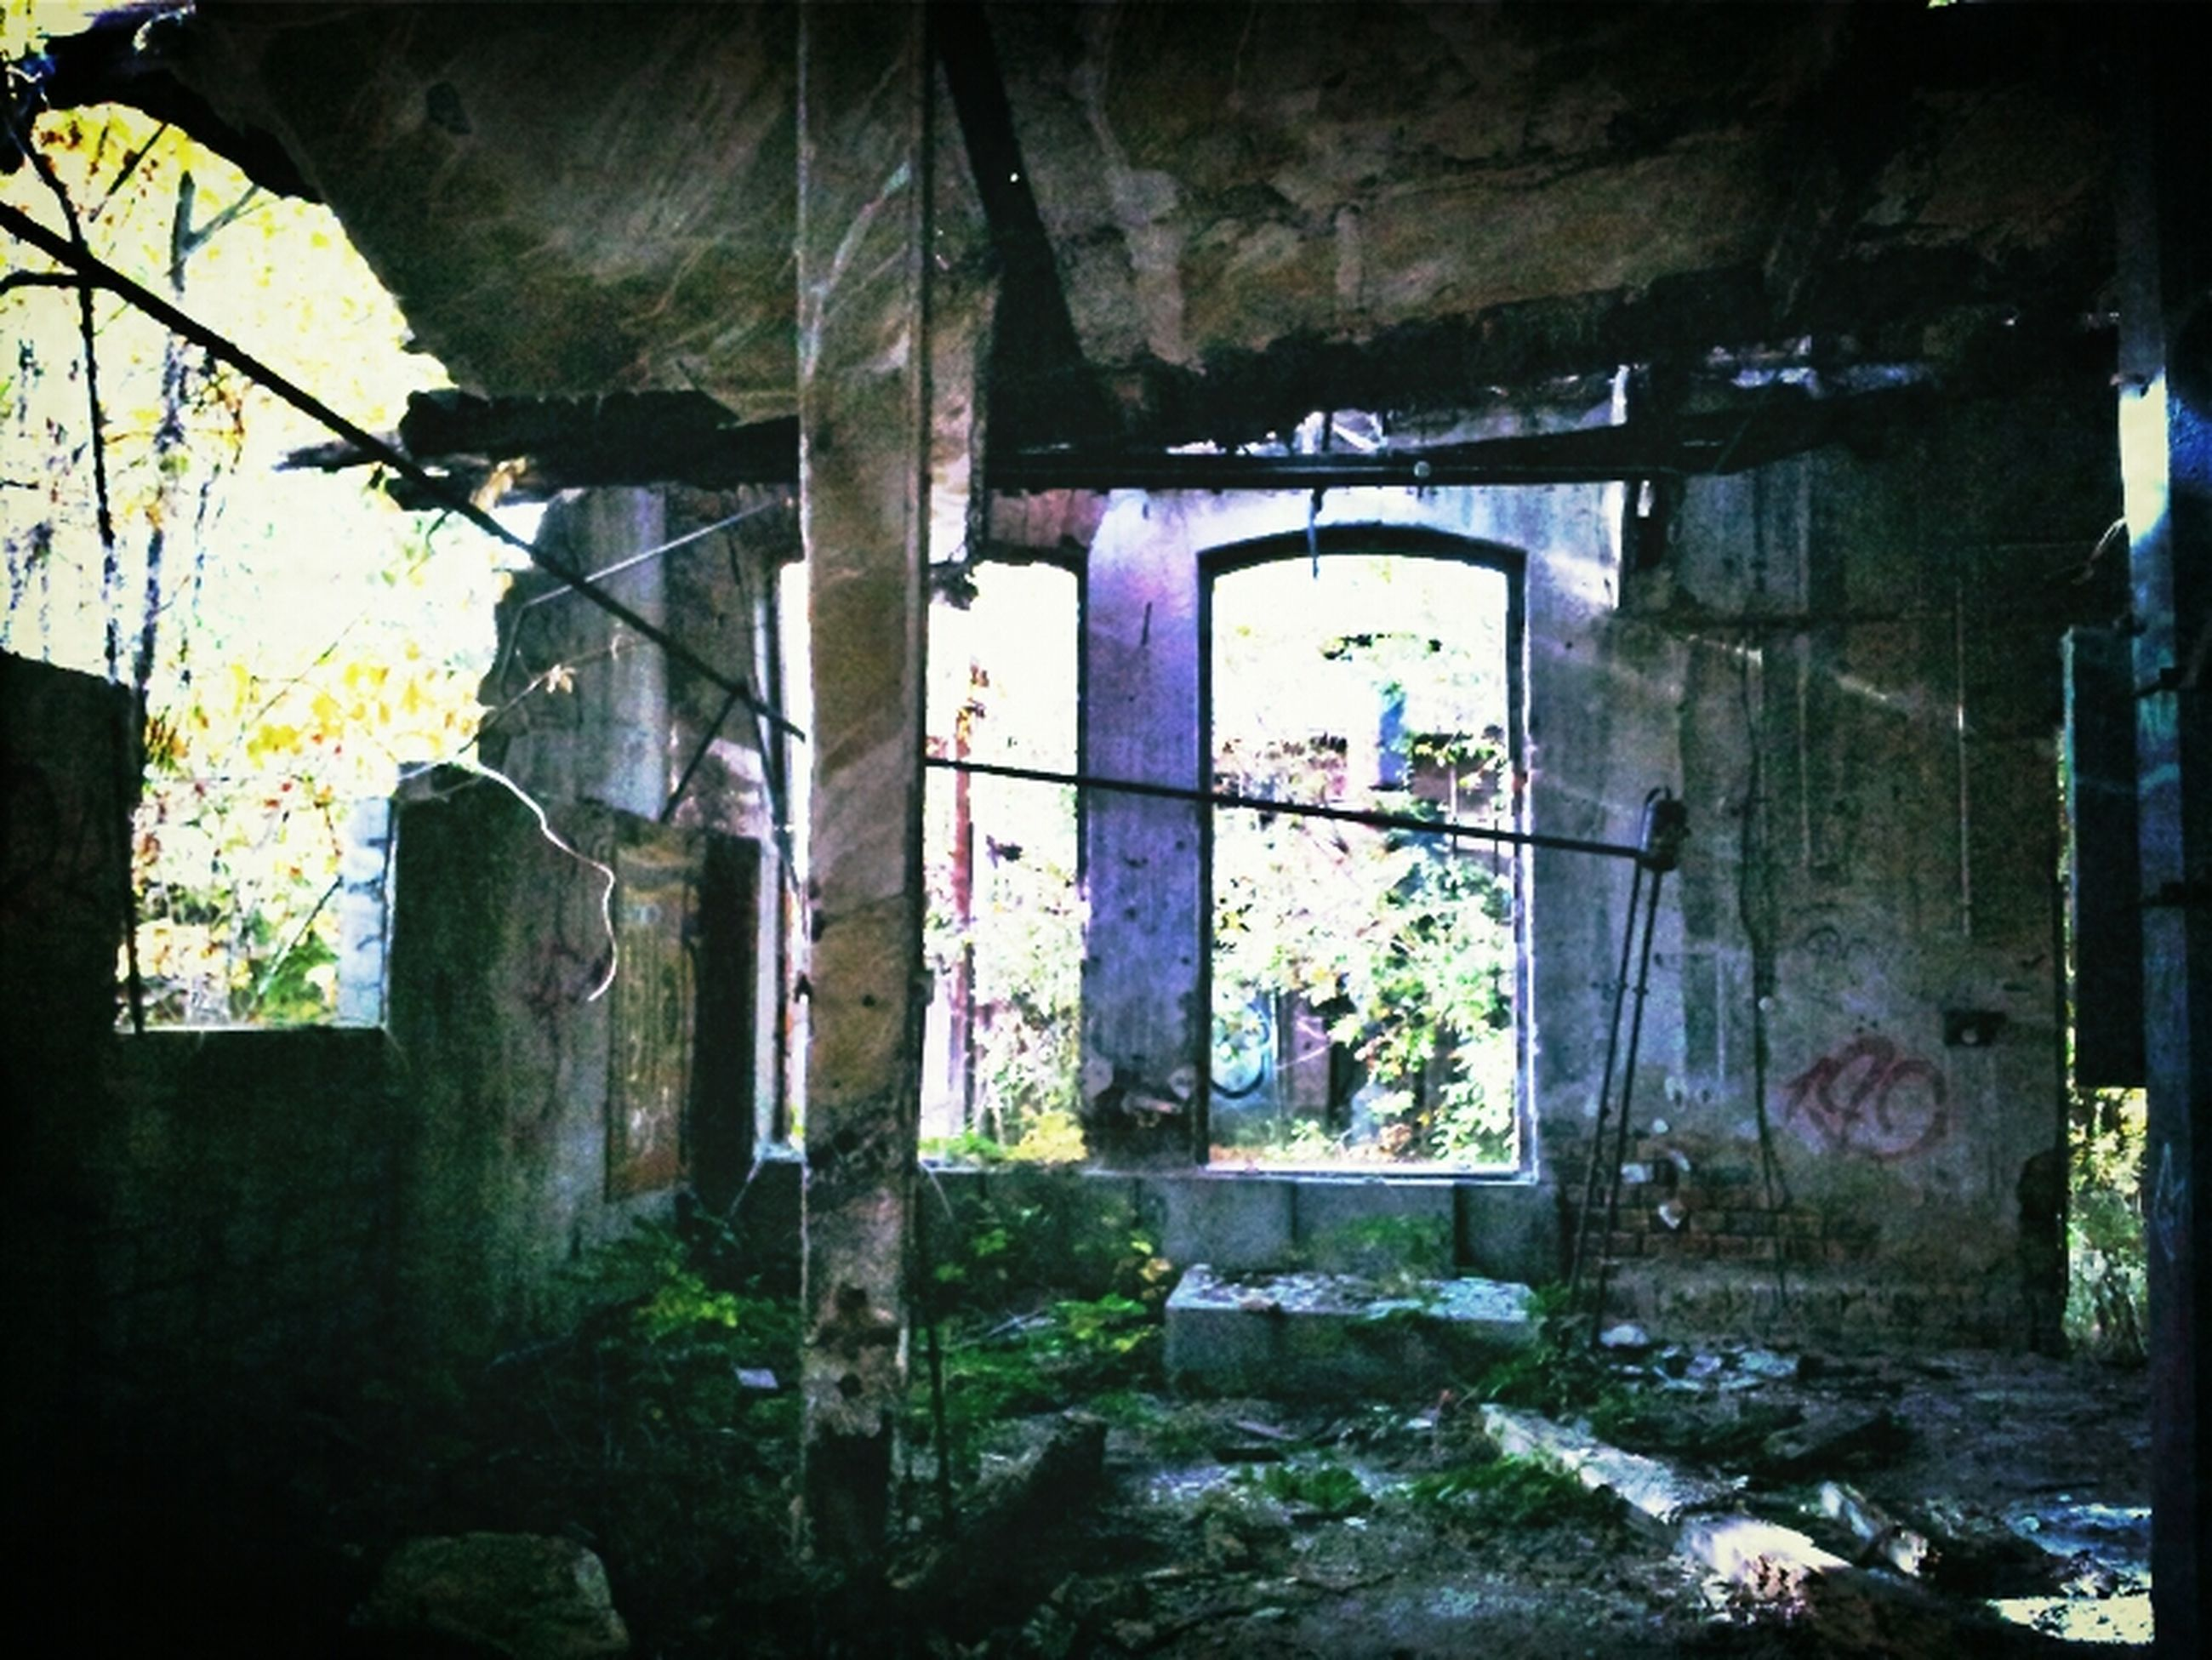 architecture, built structure, abandoned, graffiti, building exterior, obsolete, wall - building feature, damaged, old, run-down, deterioration, weathered, house, building, wall, day, text, indoors, window, bad condition